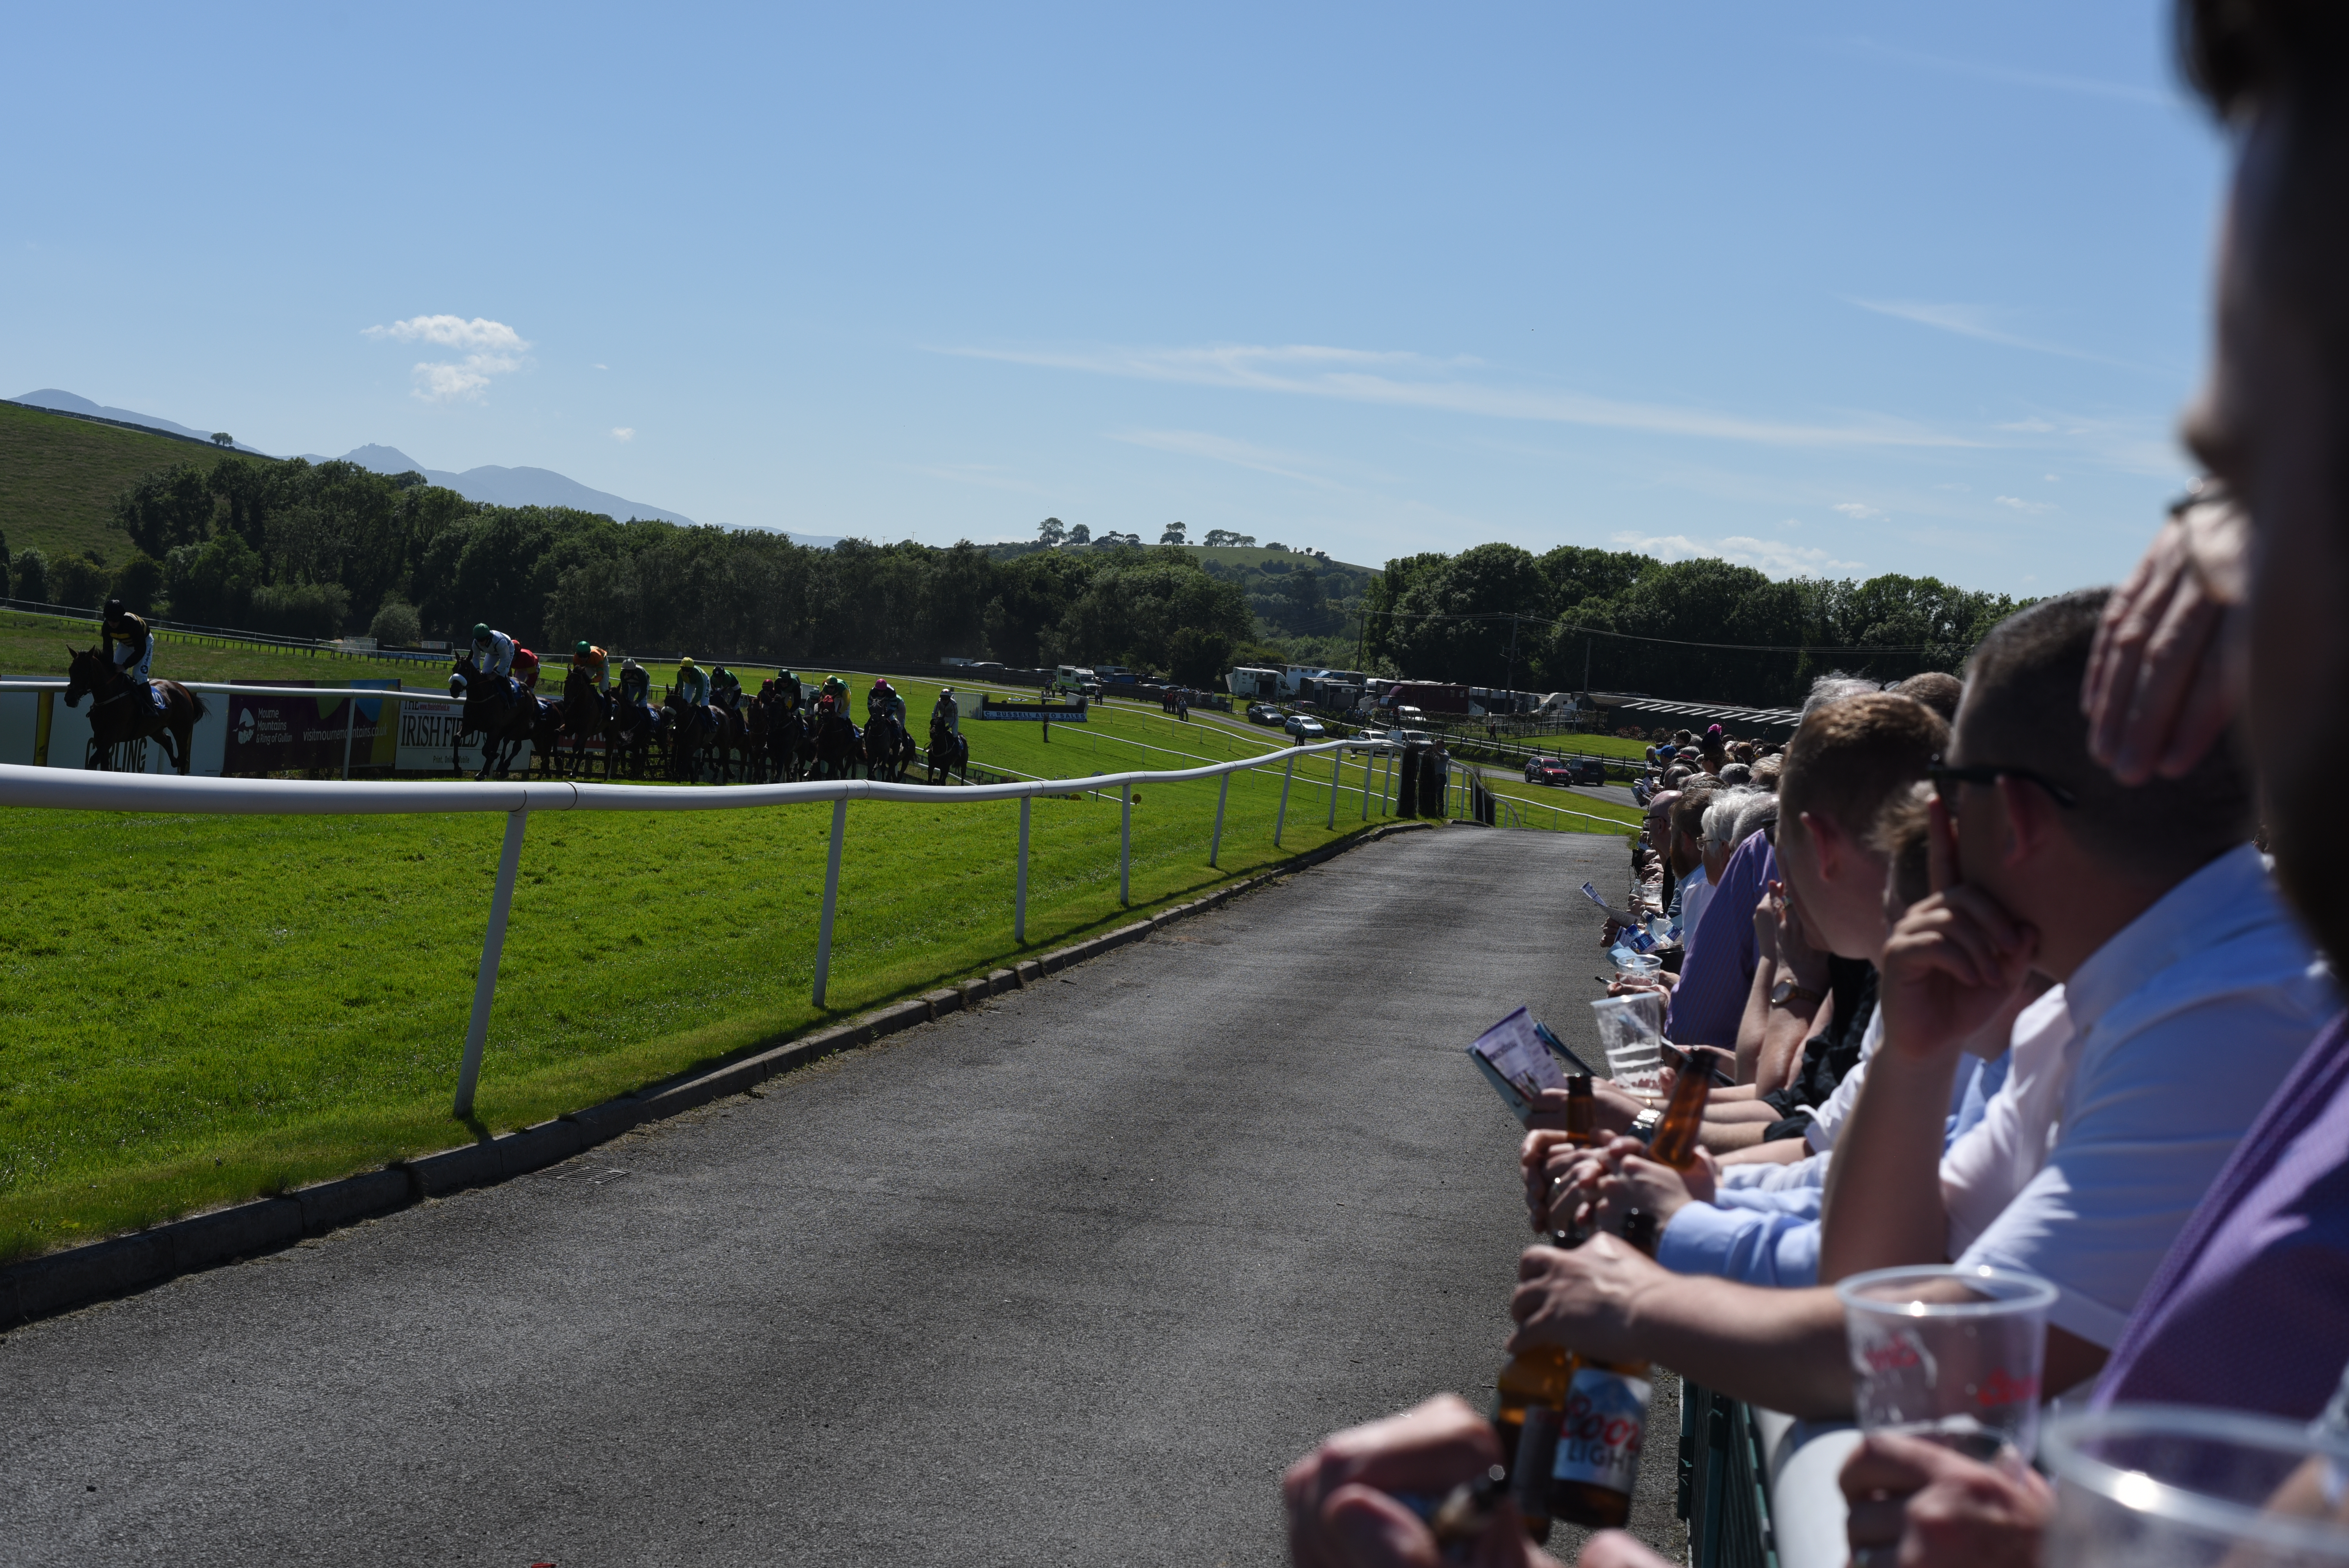 Horses and punters on Raceday.